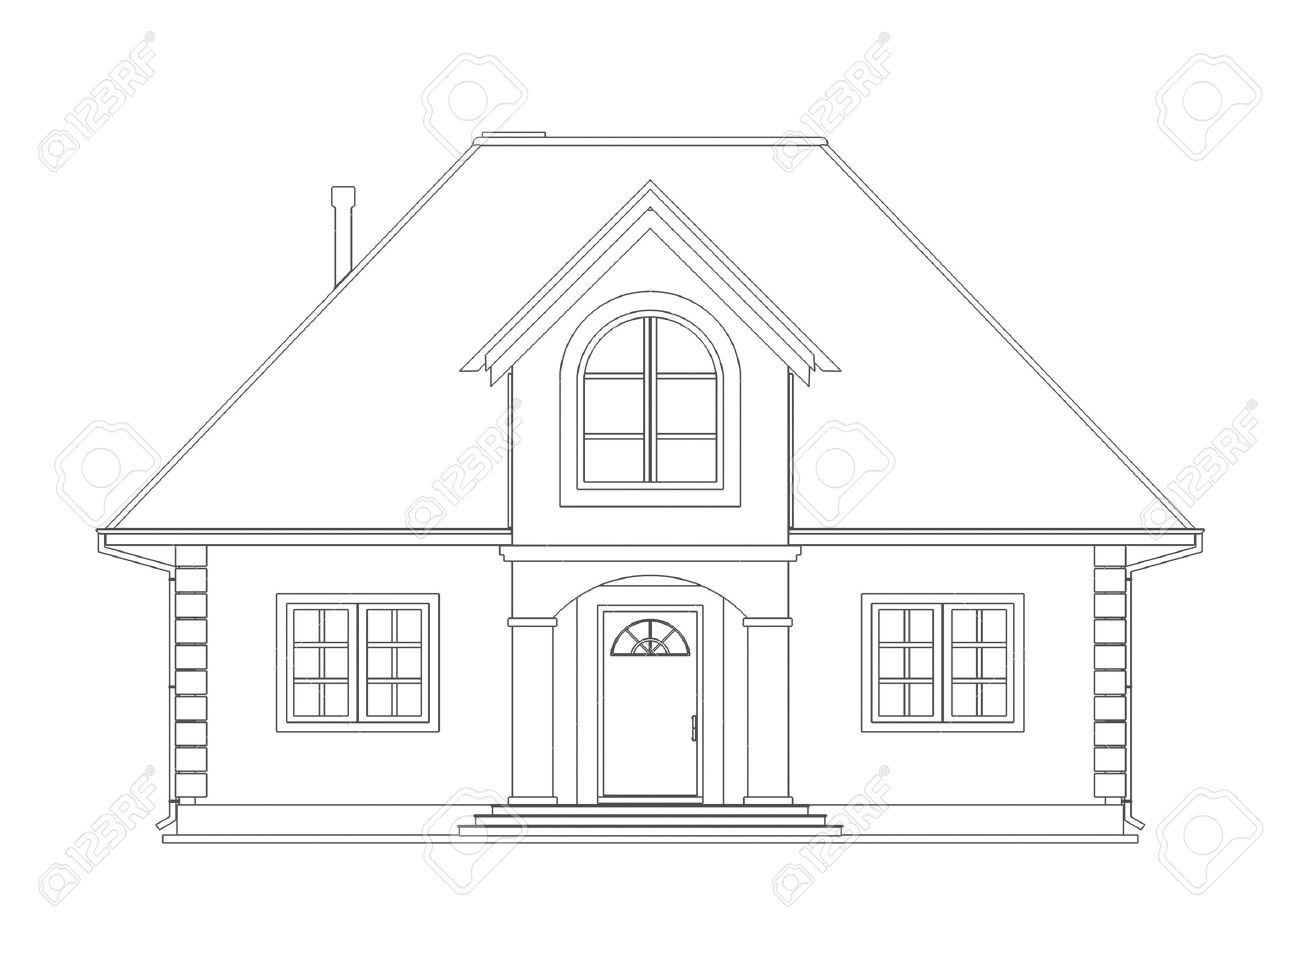 House Technical Draw Stock Photo Picture And Royalty Free Image